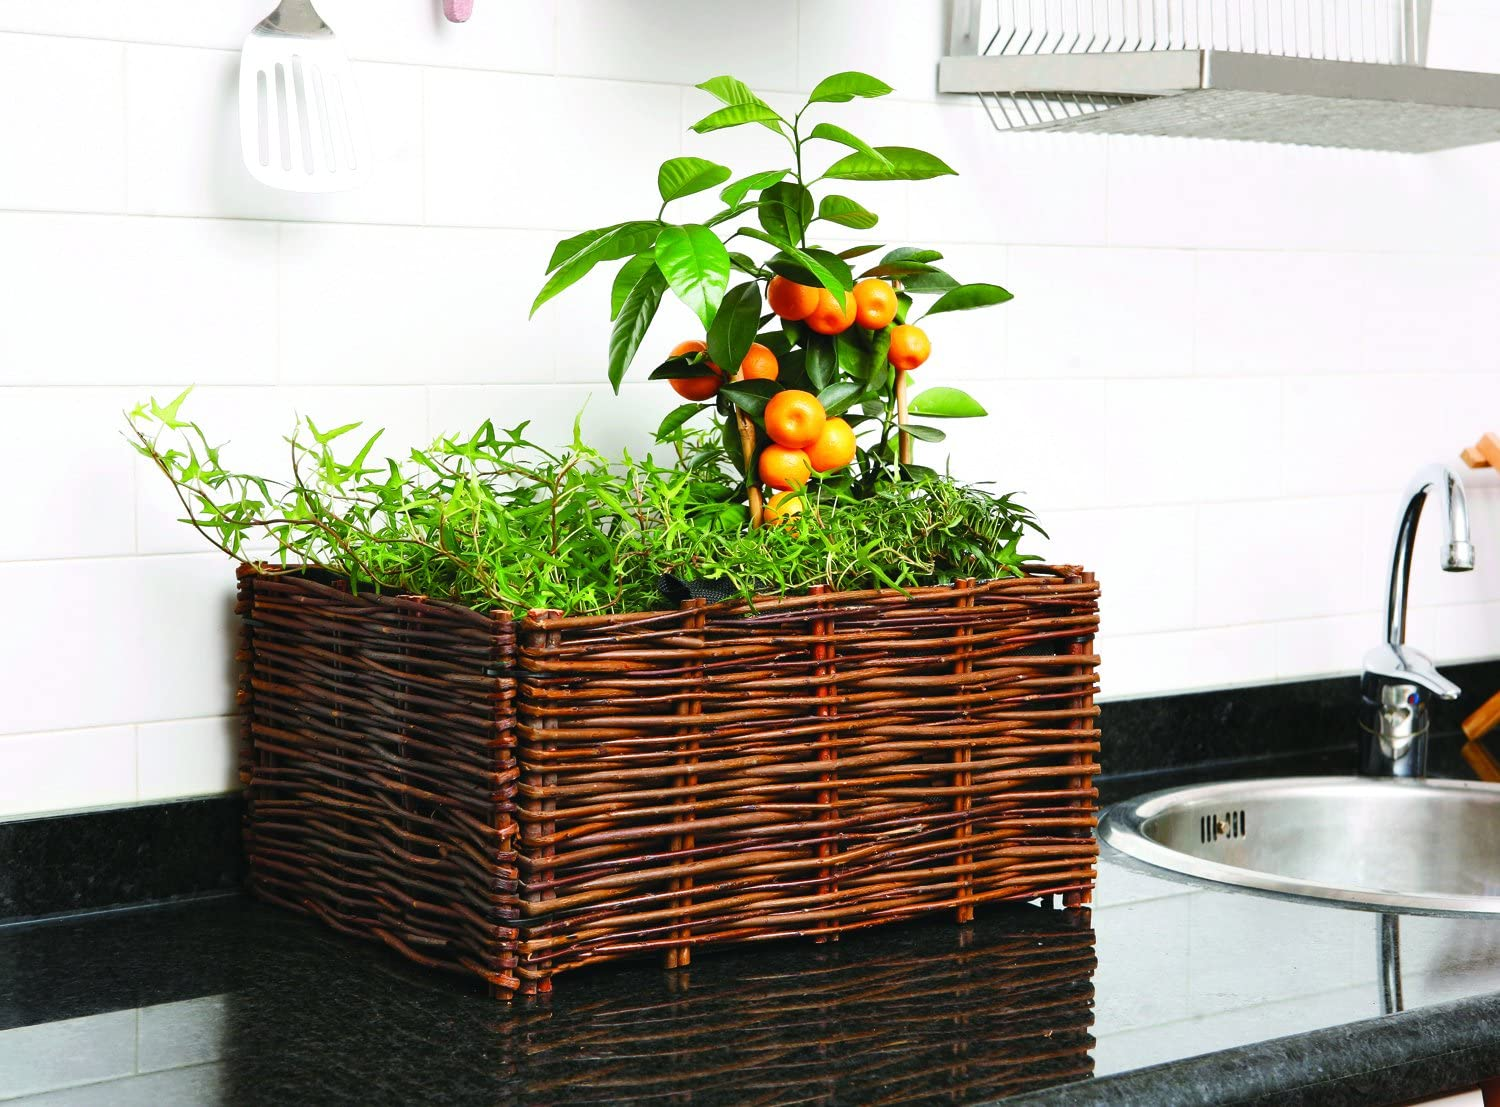 Catral 71080004 - huerto urbano kit planter, 100 x 40 x 40 cm ...